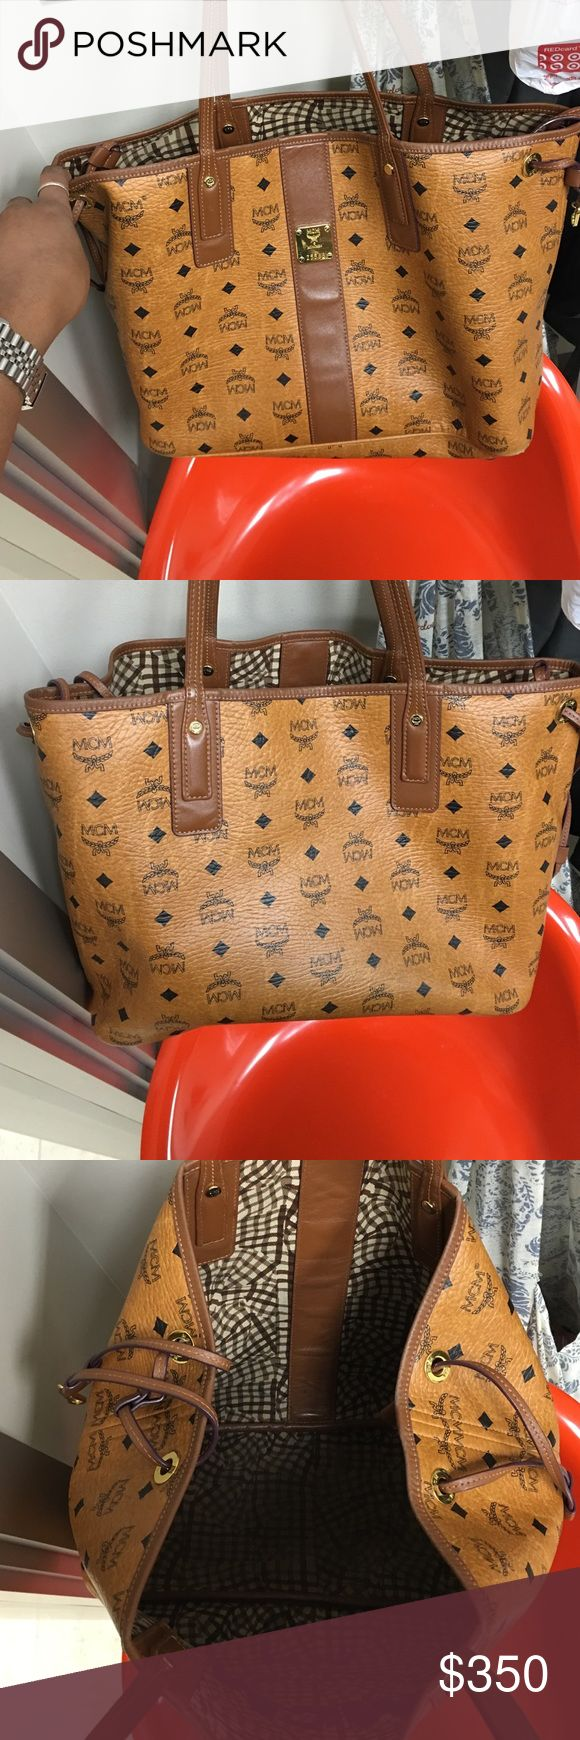 MCM brand handbag 100% Authentic MCM brand handbag medium size condition 9/10. the pouchette/wallet that comes with it has already been sold. contact me for any questions concerns or more photos MCM Bags Shoulder Bags